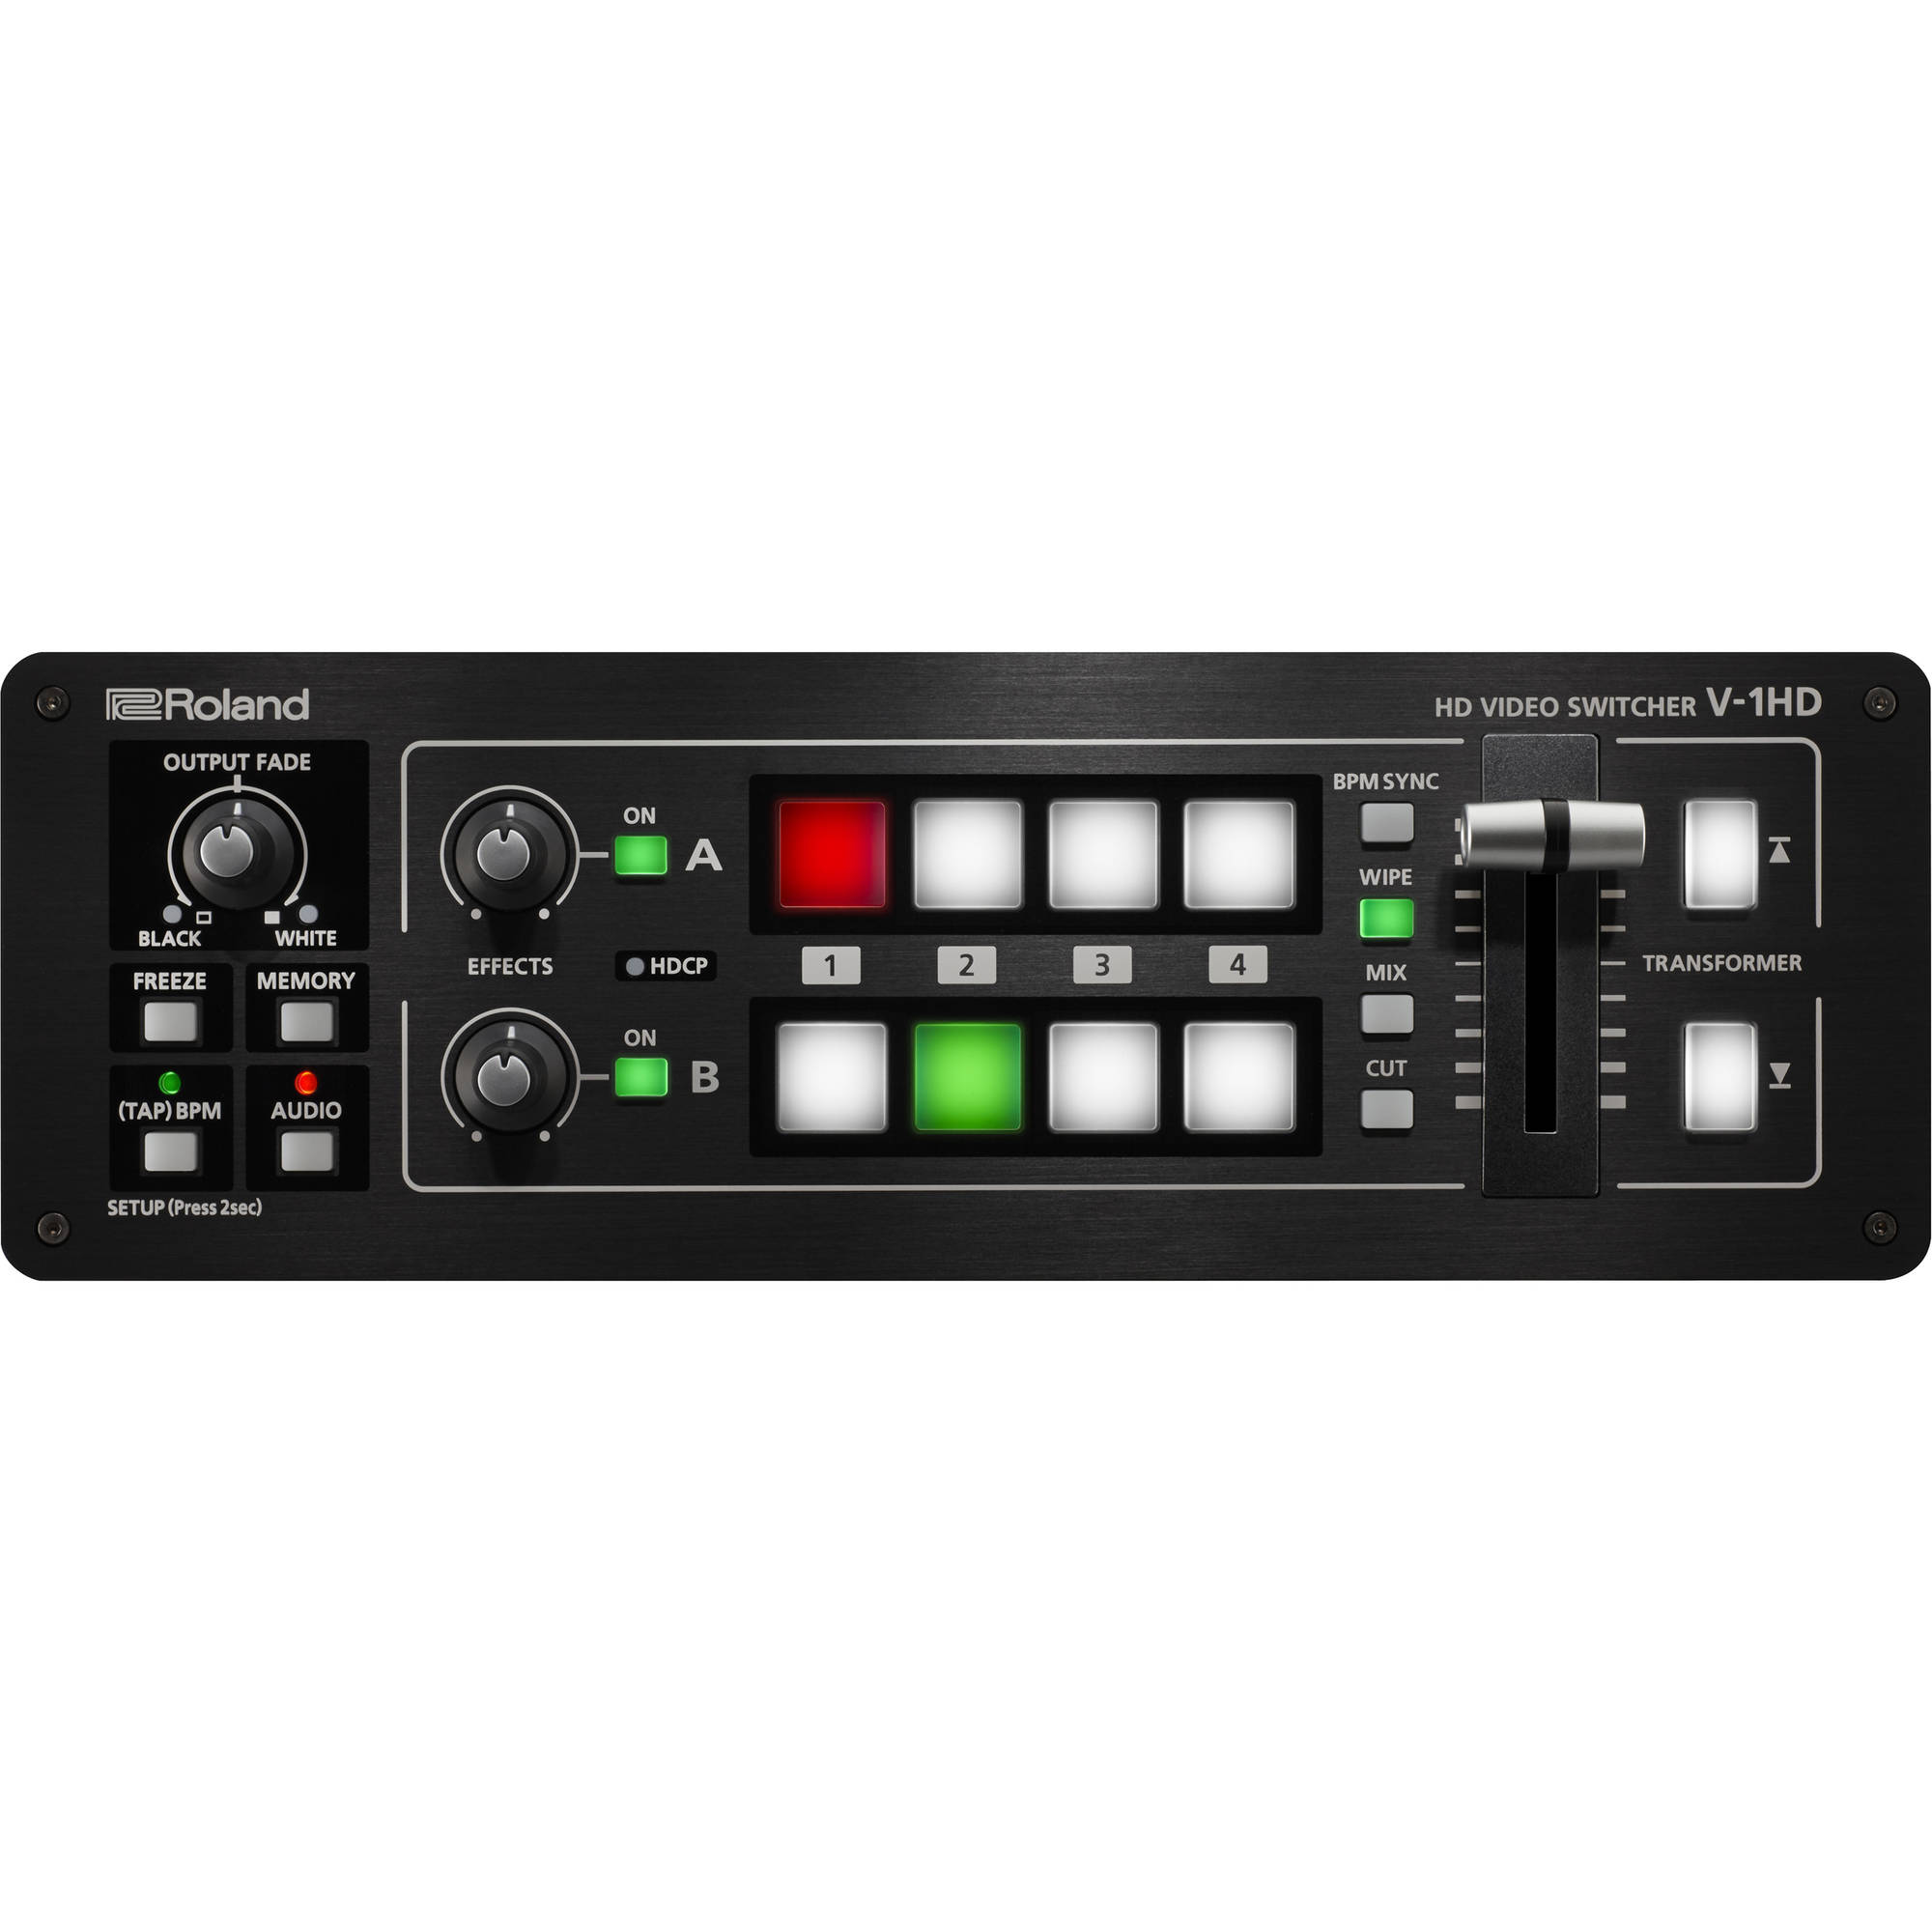 ROLAND V-1HD (V1HD) PORTABLE 4 x HDMI Input Video Switcher